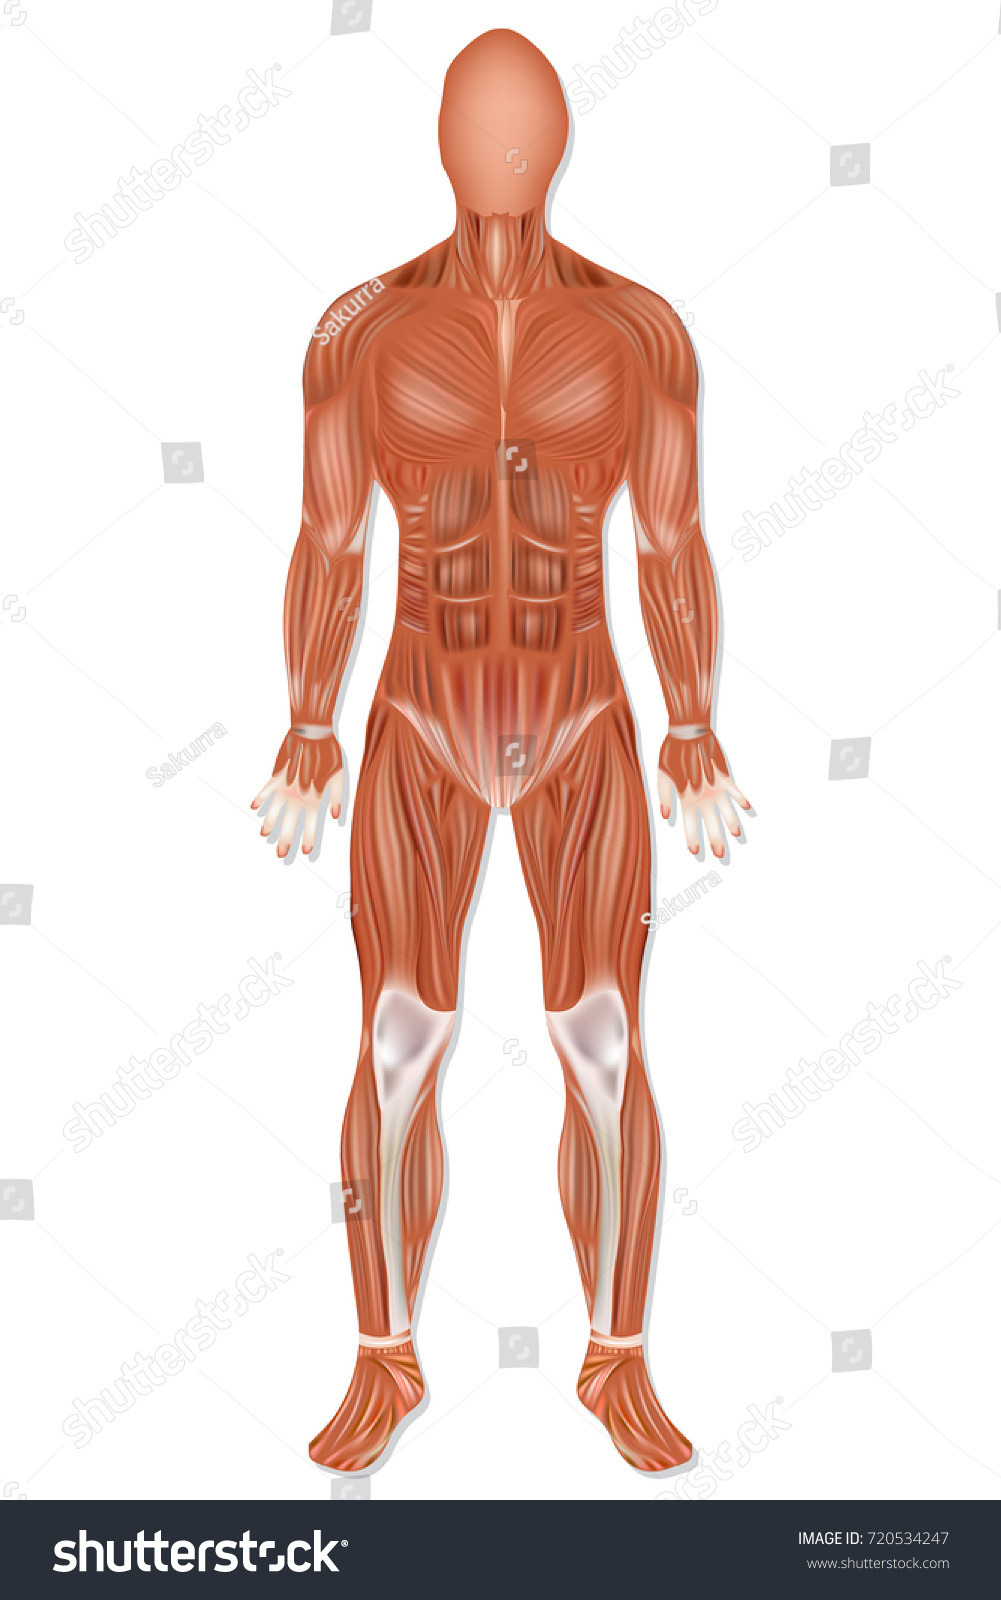 Human Muscle Anatomy Man Muscular System Stock Vector Royalty Free